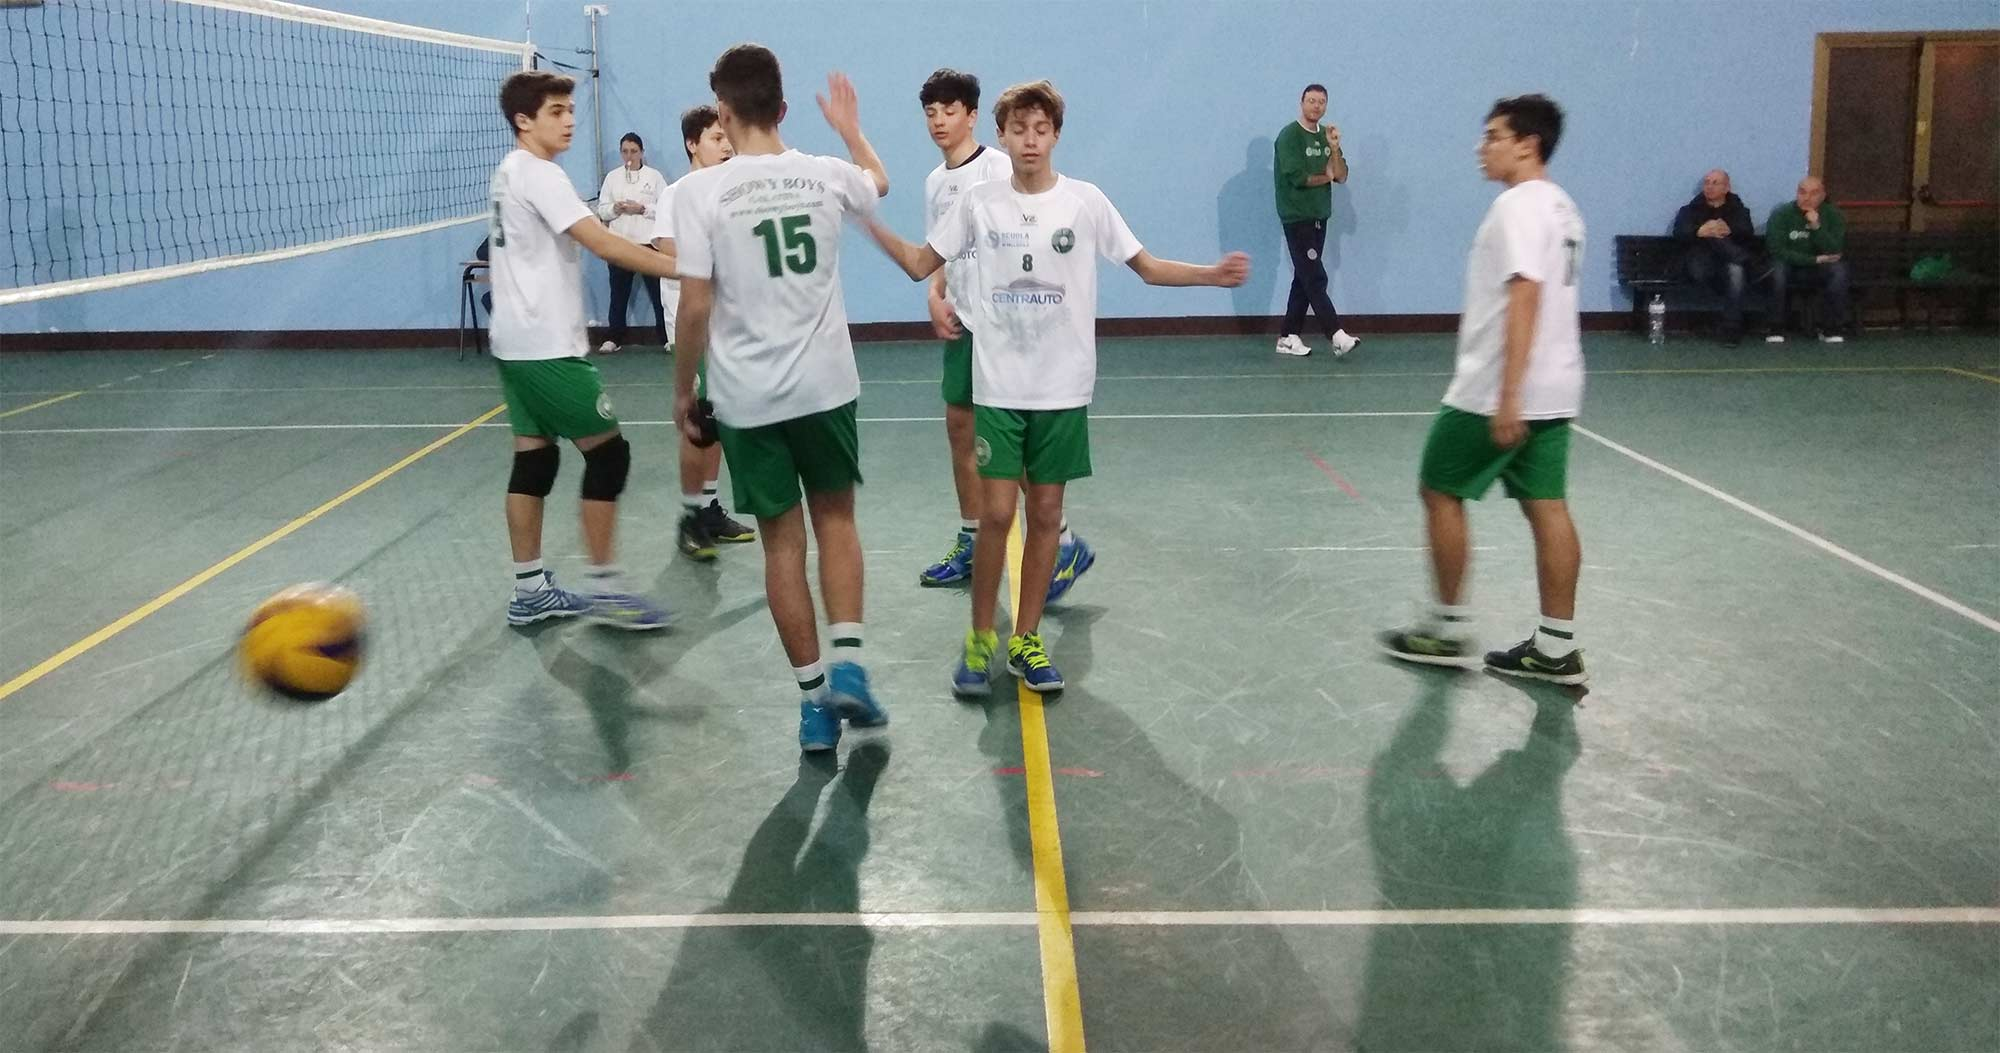 La Showy Boys alla final four provinciale del torneo 3D Young